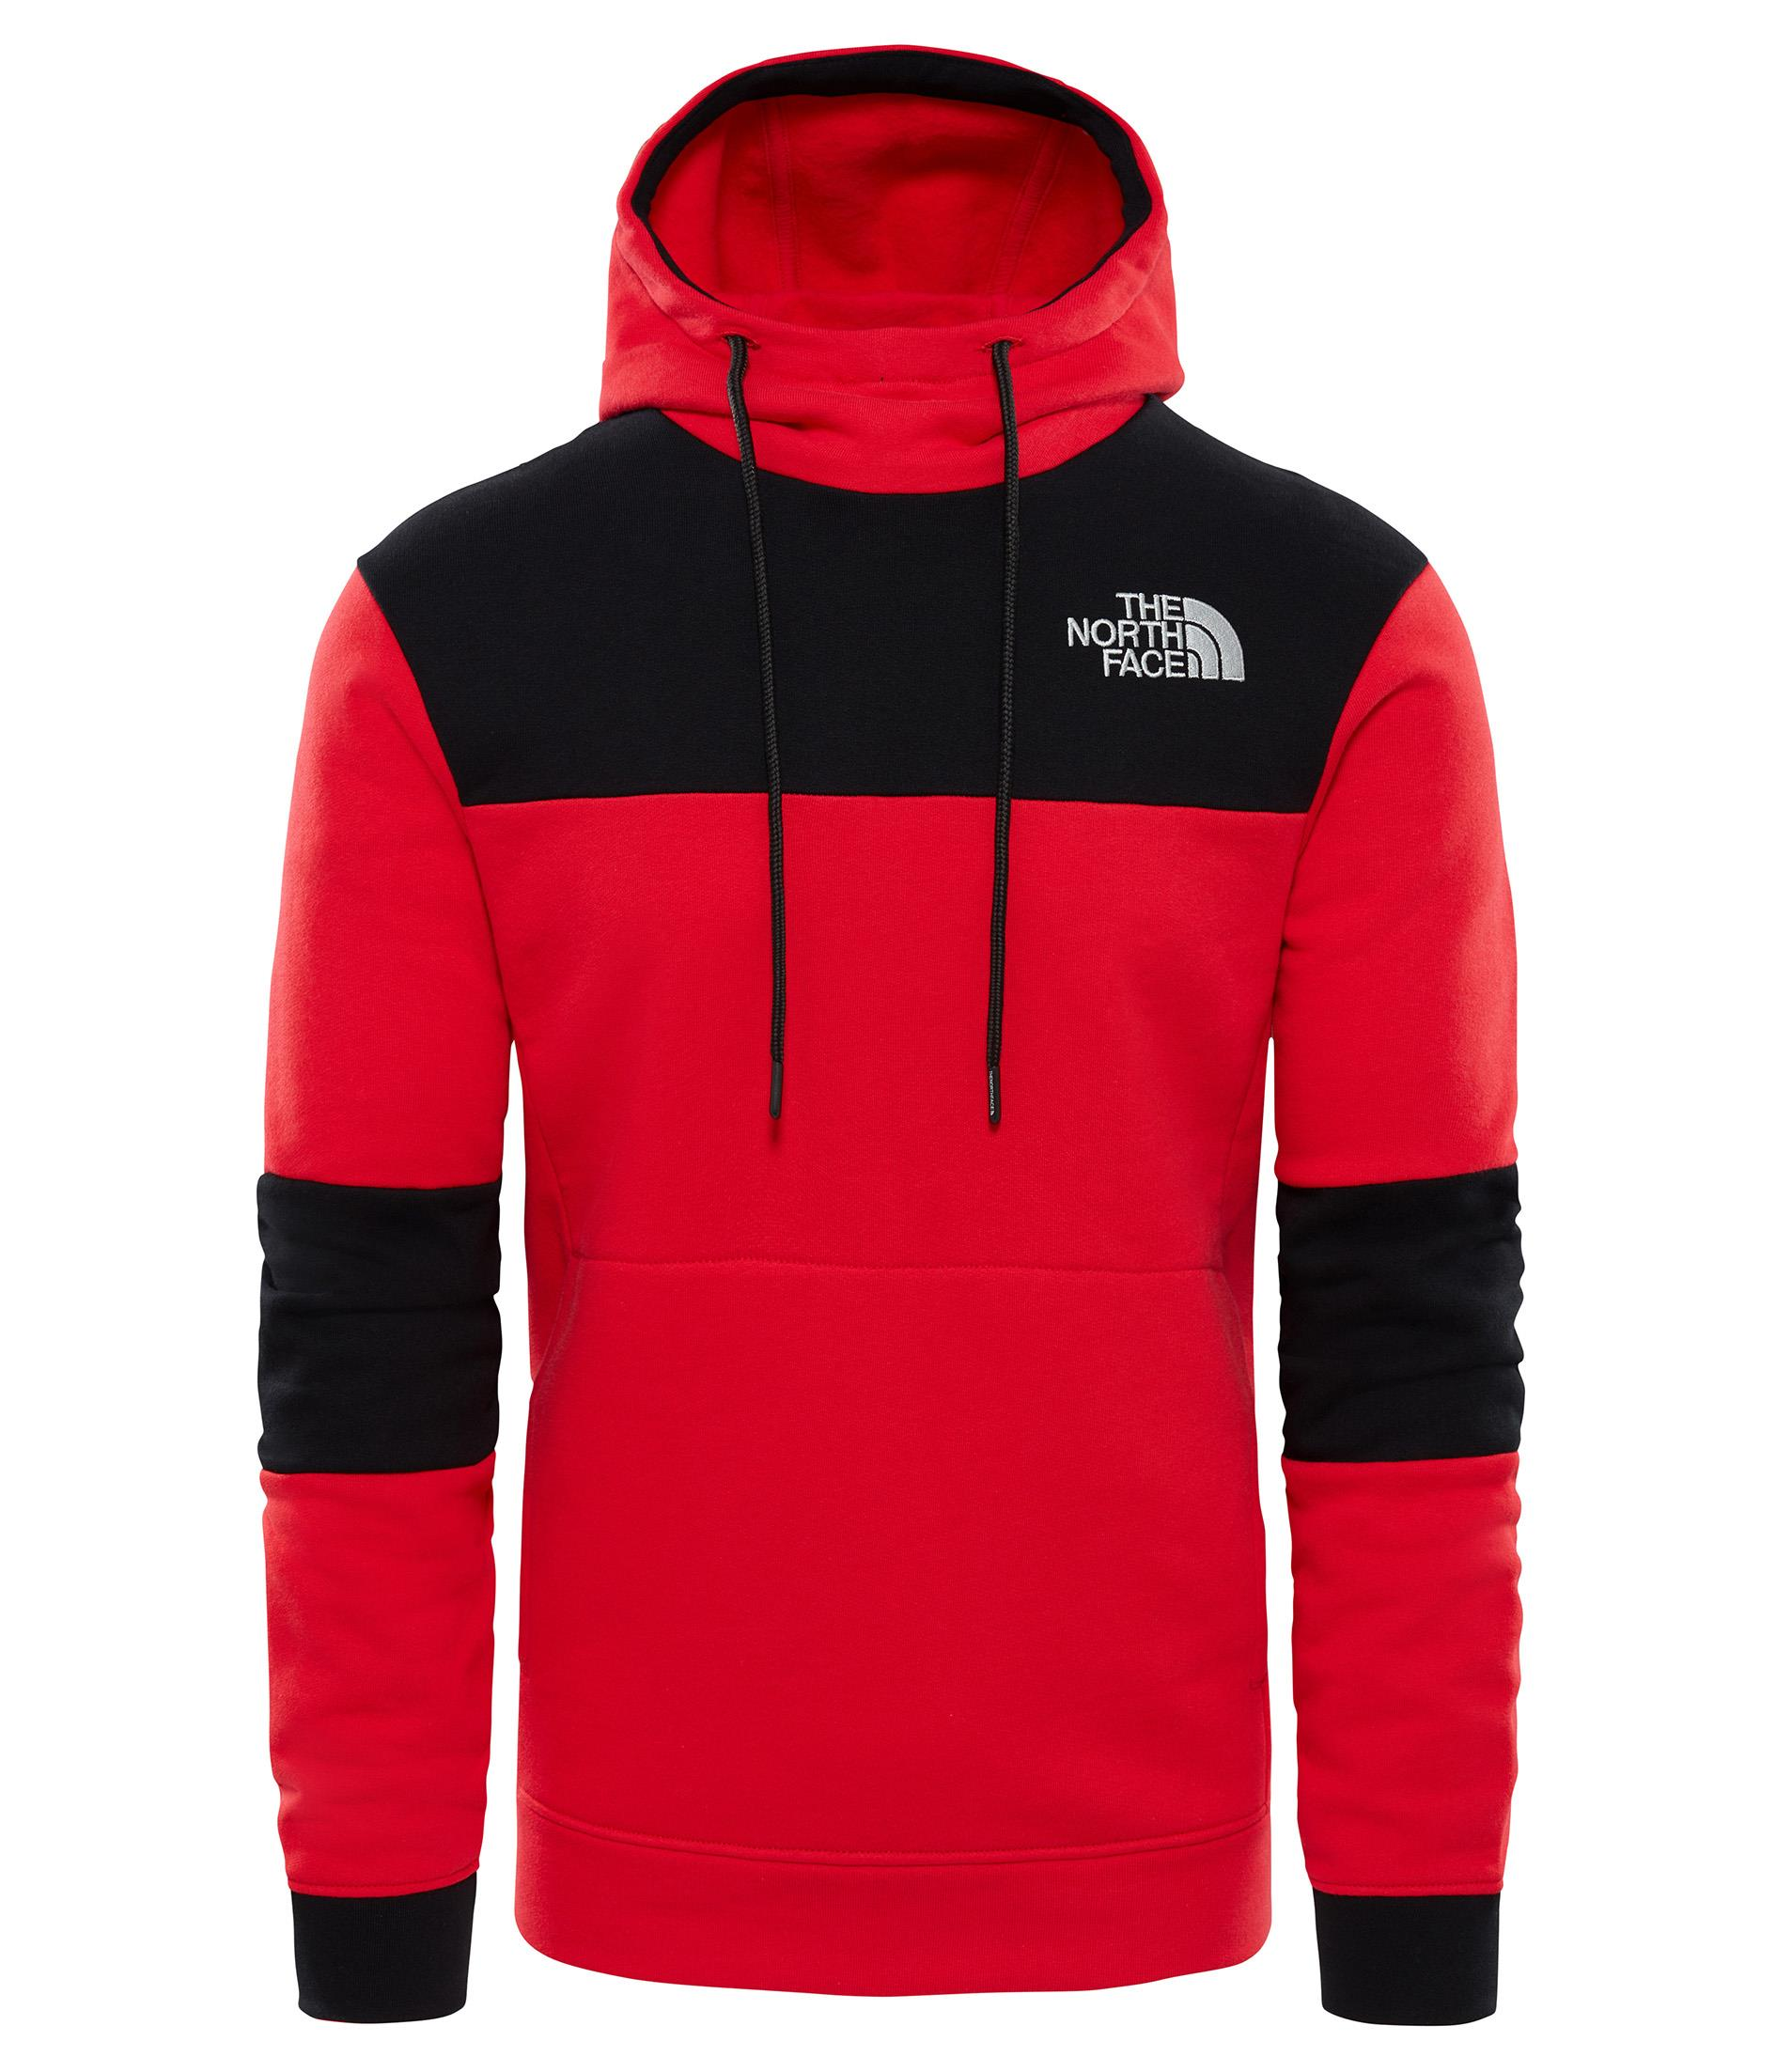 The North Face Erkek Hımalayan Hoodıe Sweat Shirt